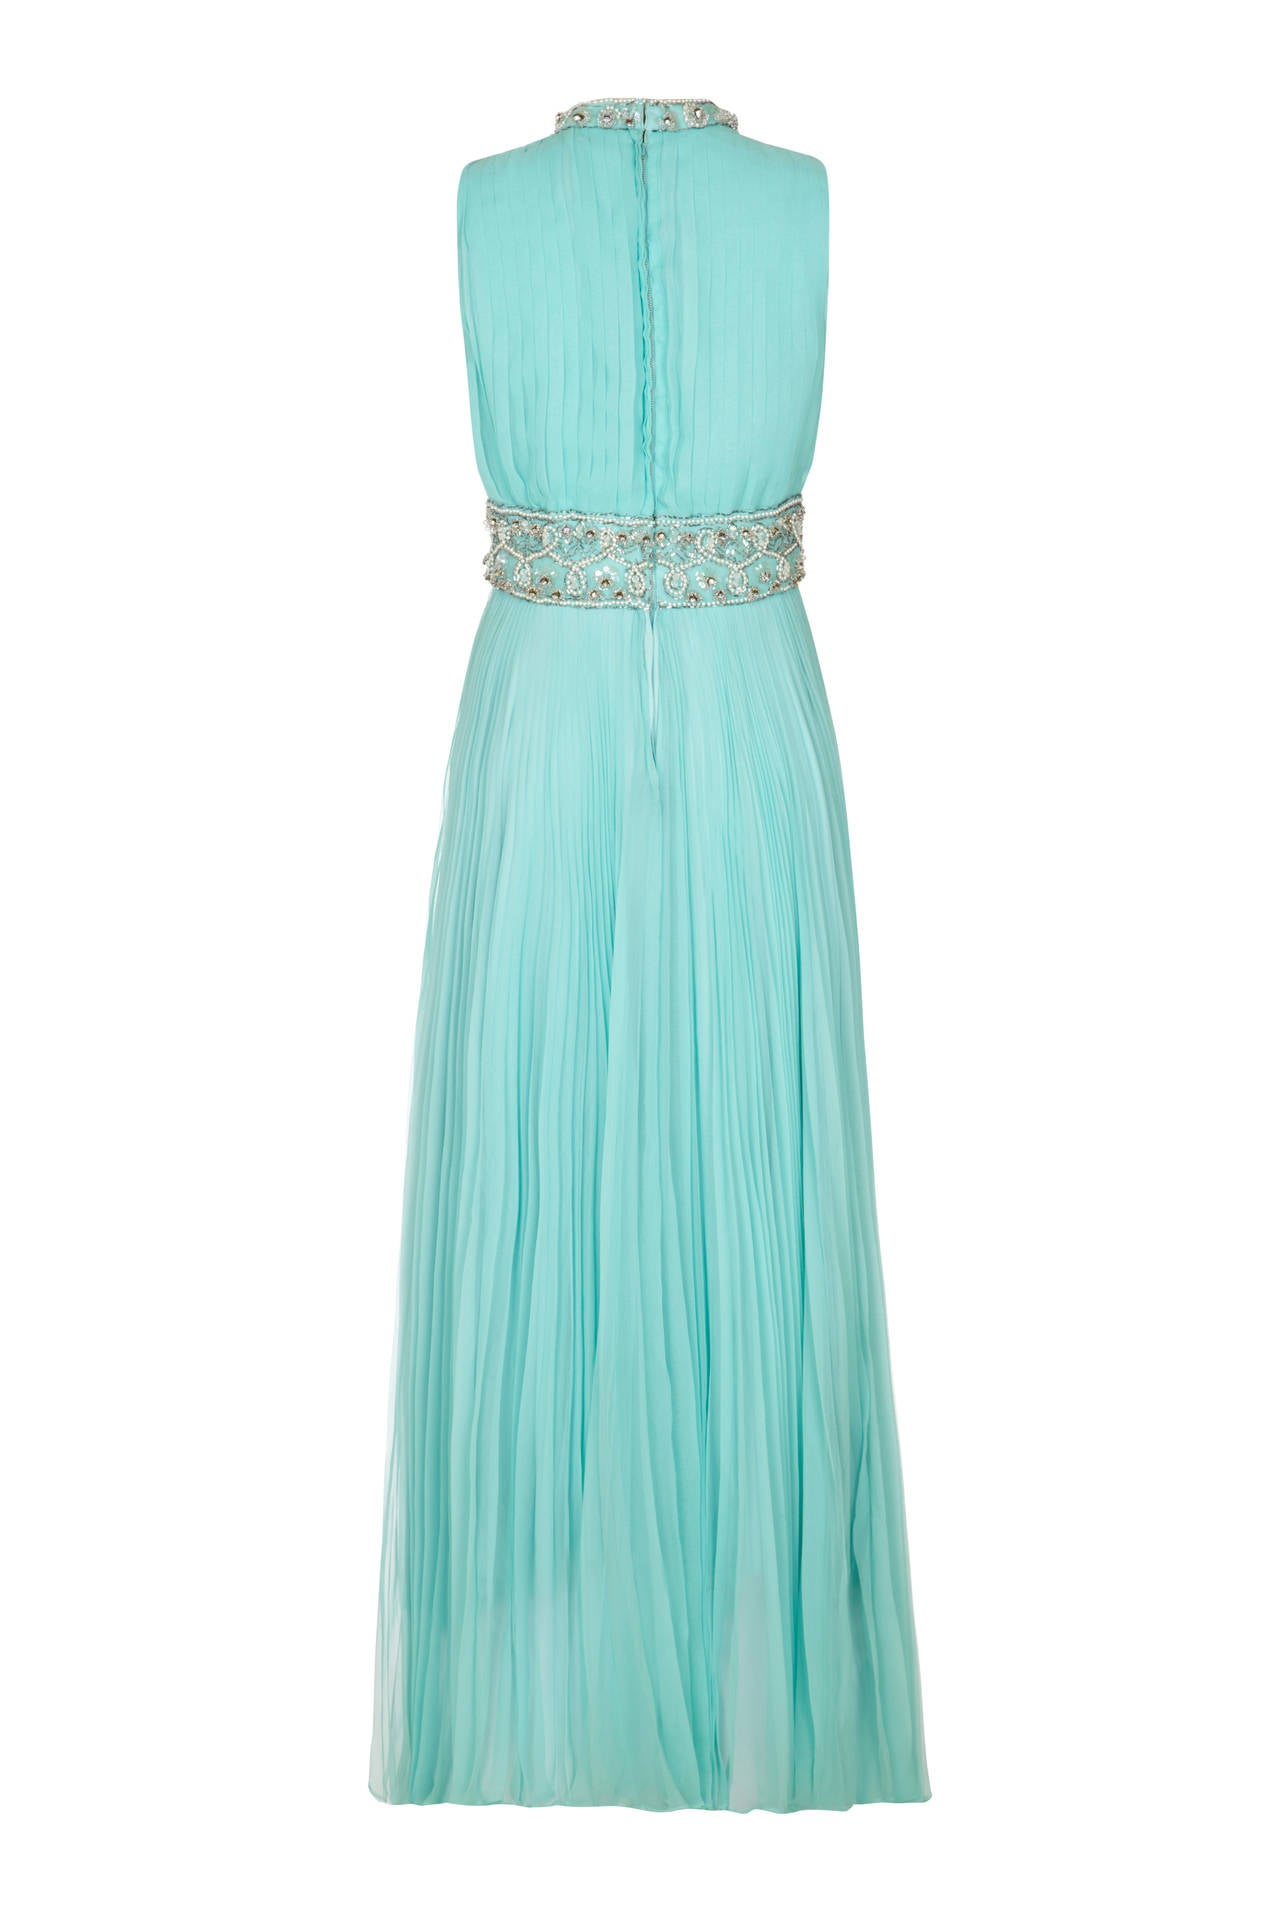 Absolutely amazing full length turquoise pleated chiffon gown from American label Cerdley.  This piece features fabulous beaded and sequined waistband and neckline, is fully lined and fastens at the back with a zip. A beautiful and striking dress in